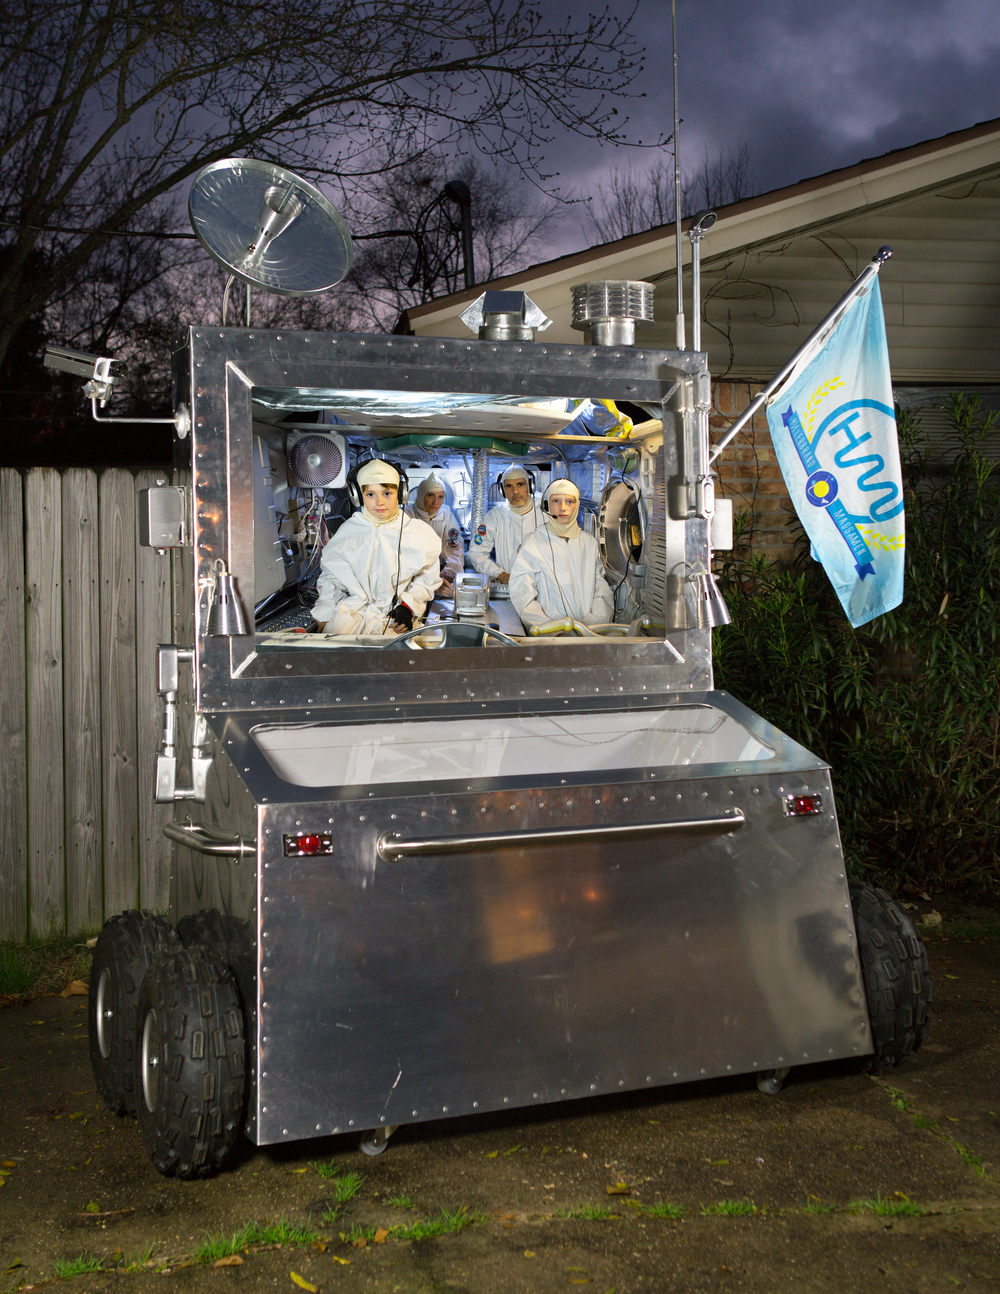 Space Rover that was created to house the video for the Houston Airport.